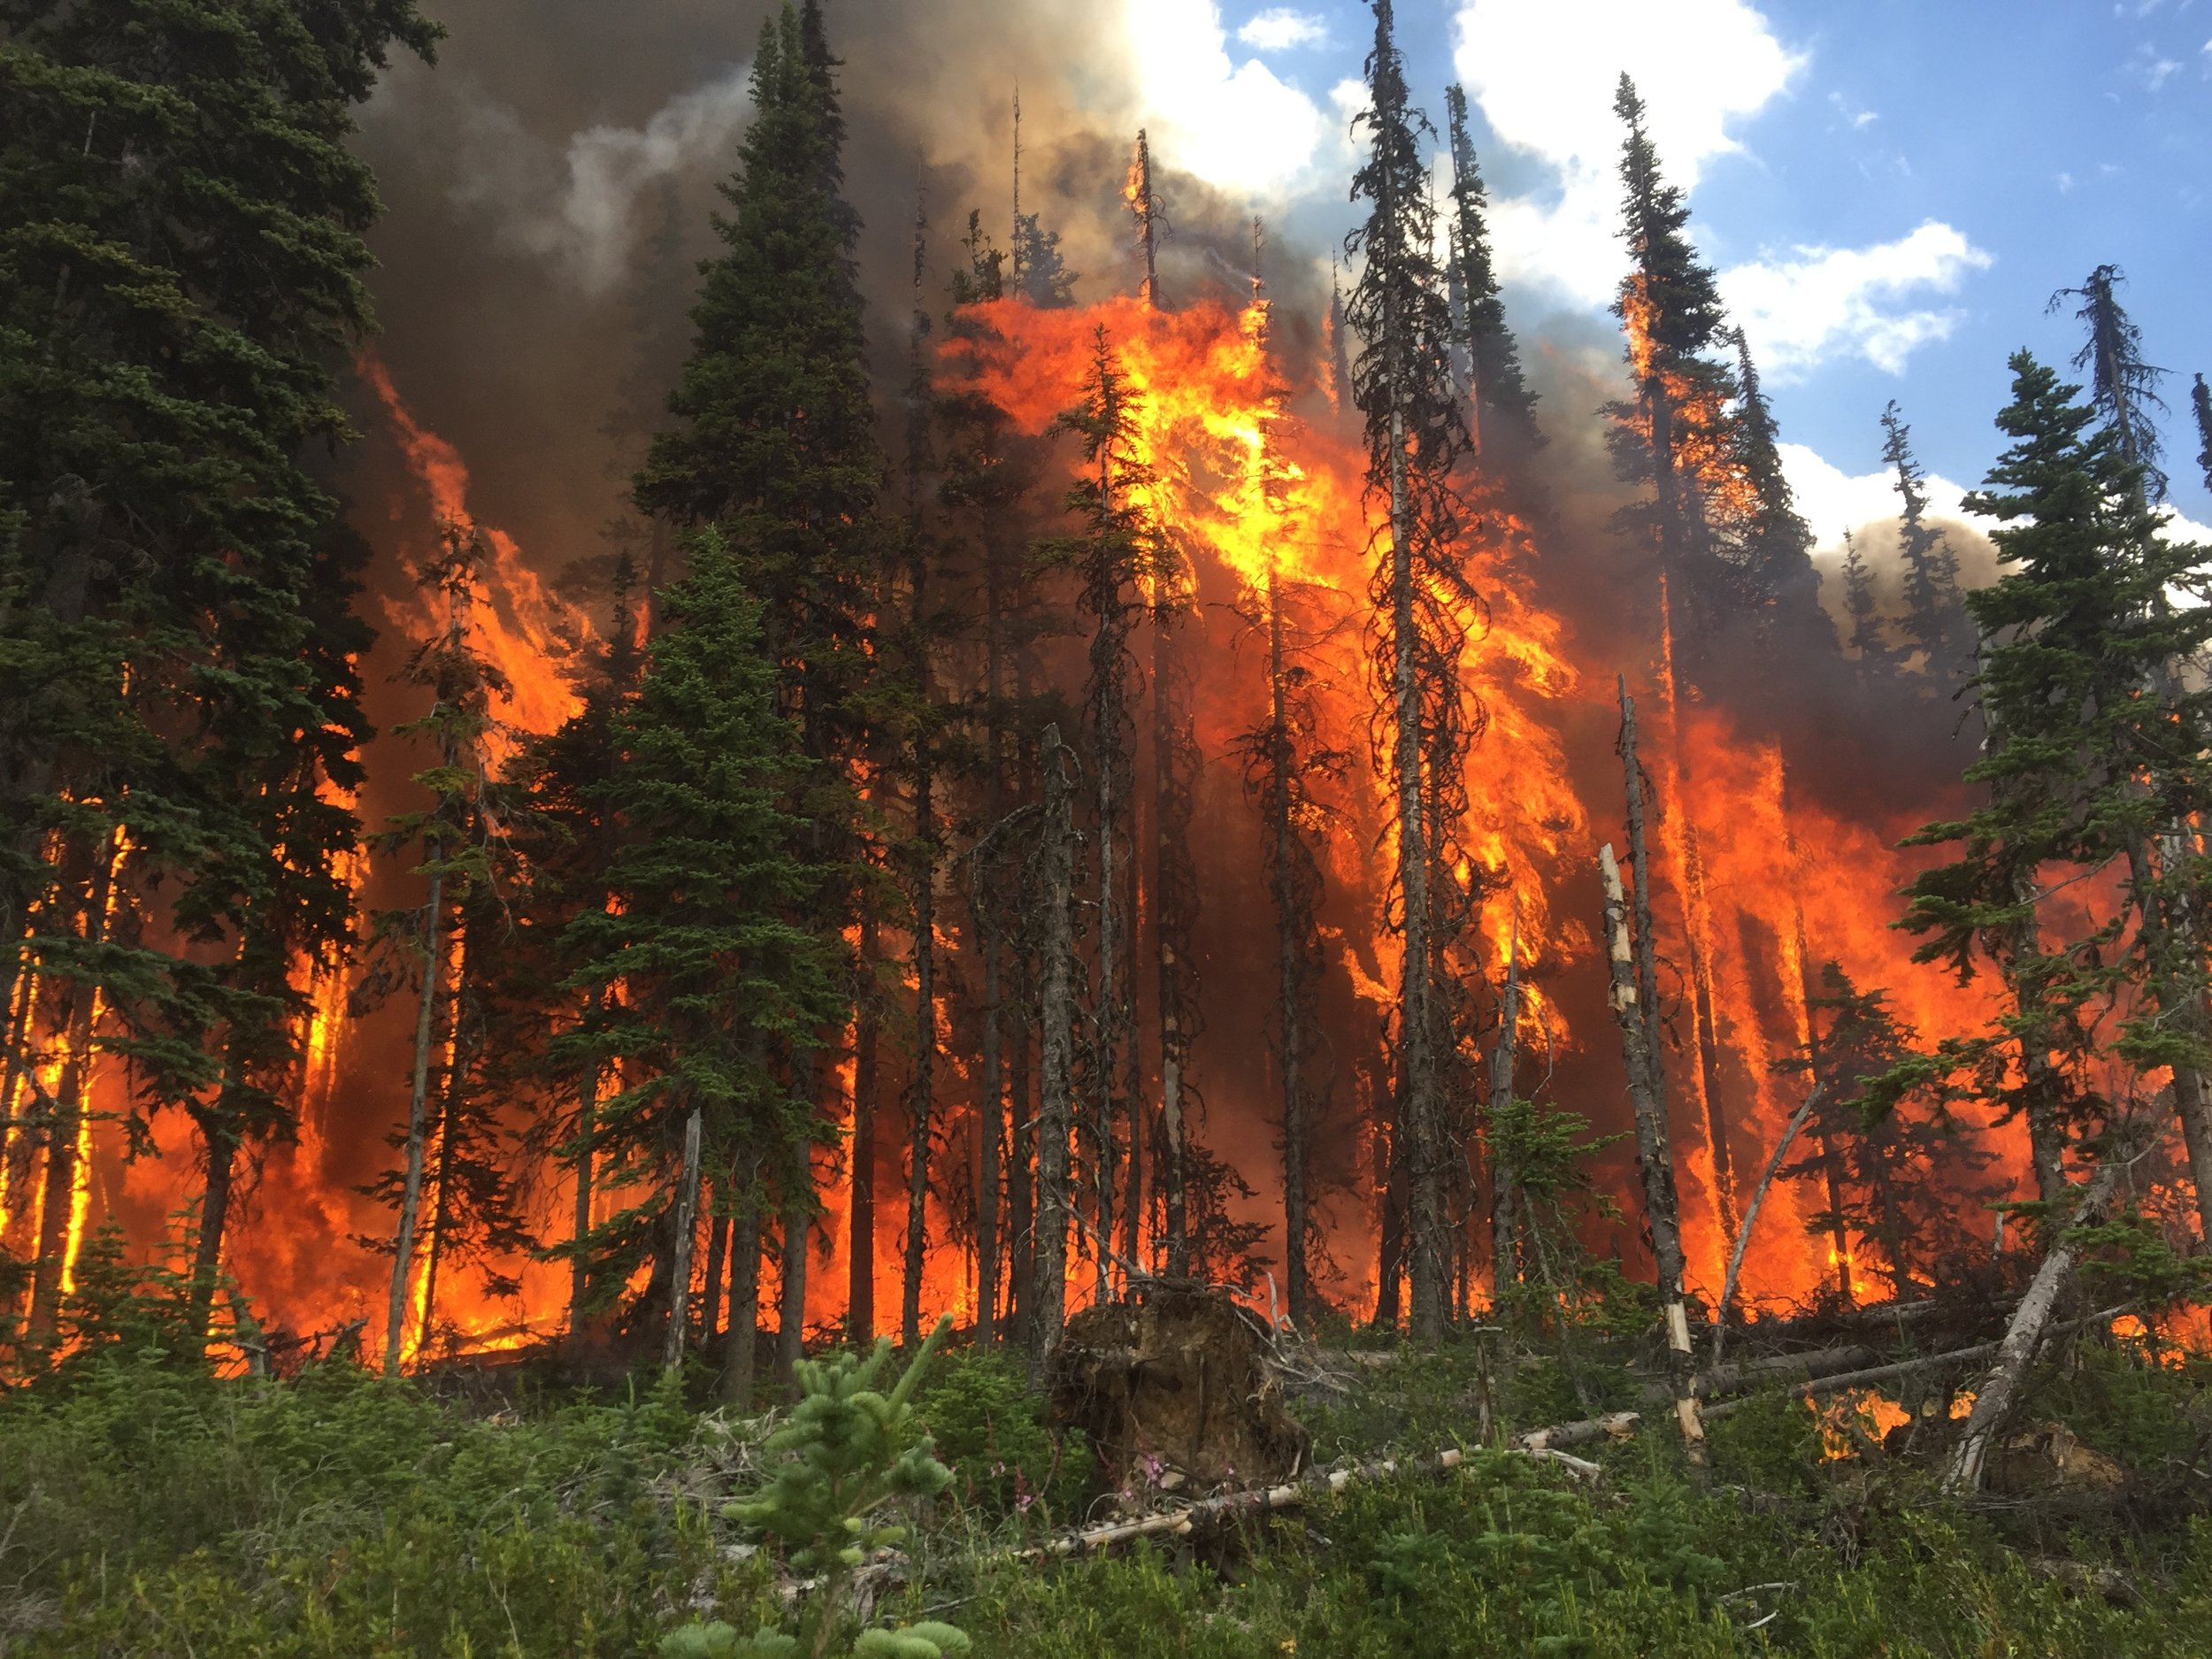 Burn off operations on a grove of coniferous trees.